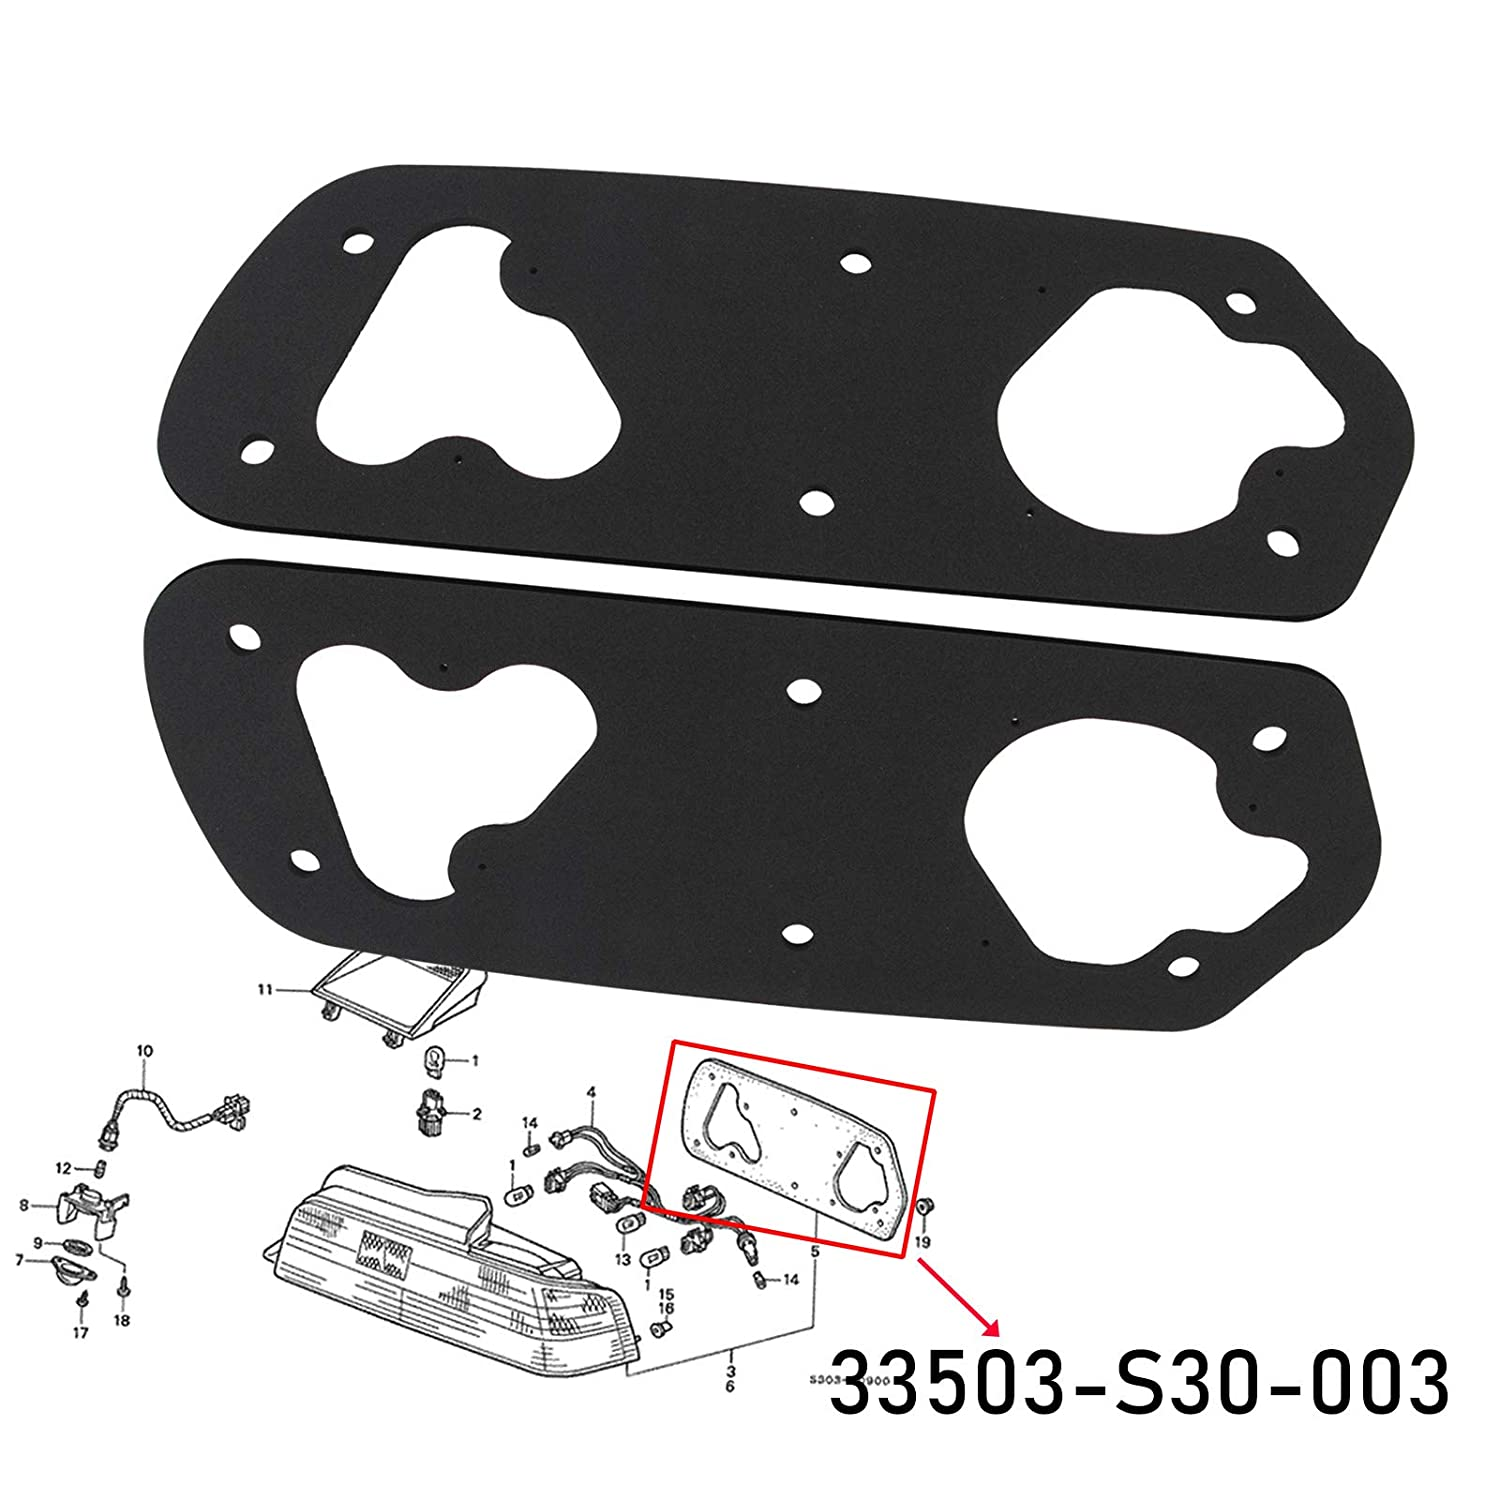 Taillight Gaskets for Honda Prelude 1997-2001 Taillight Improved Gasket Gaskets 1 Pair 33503-S30-003